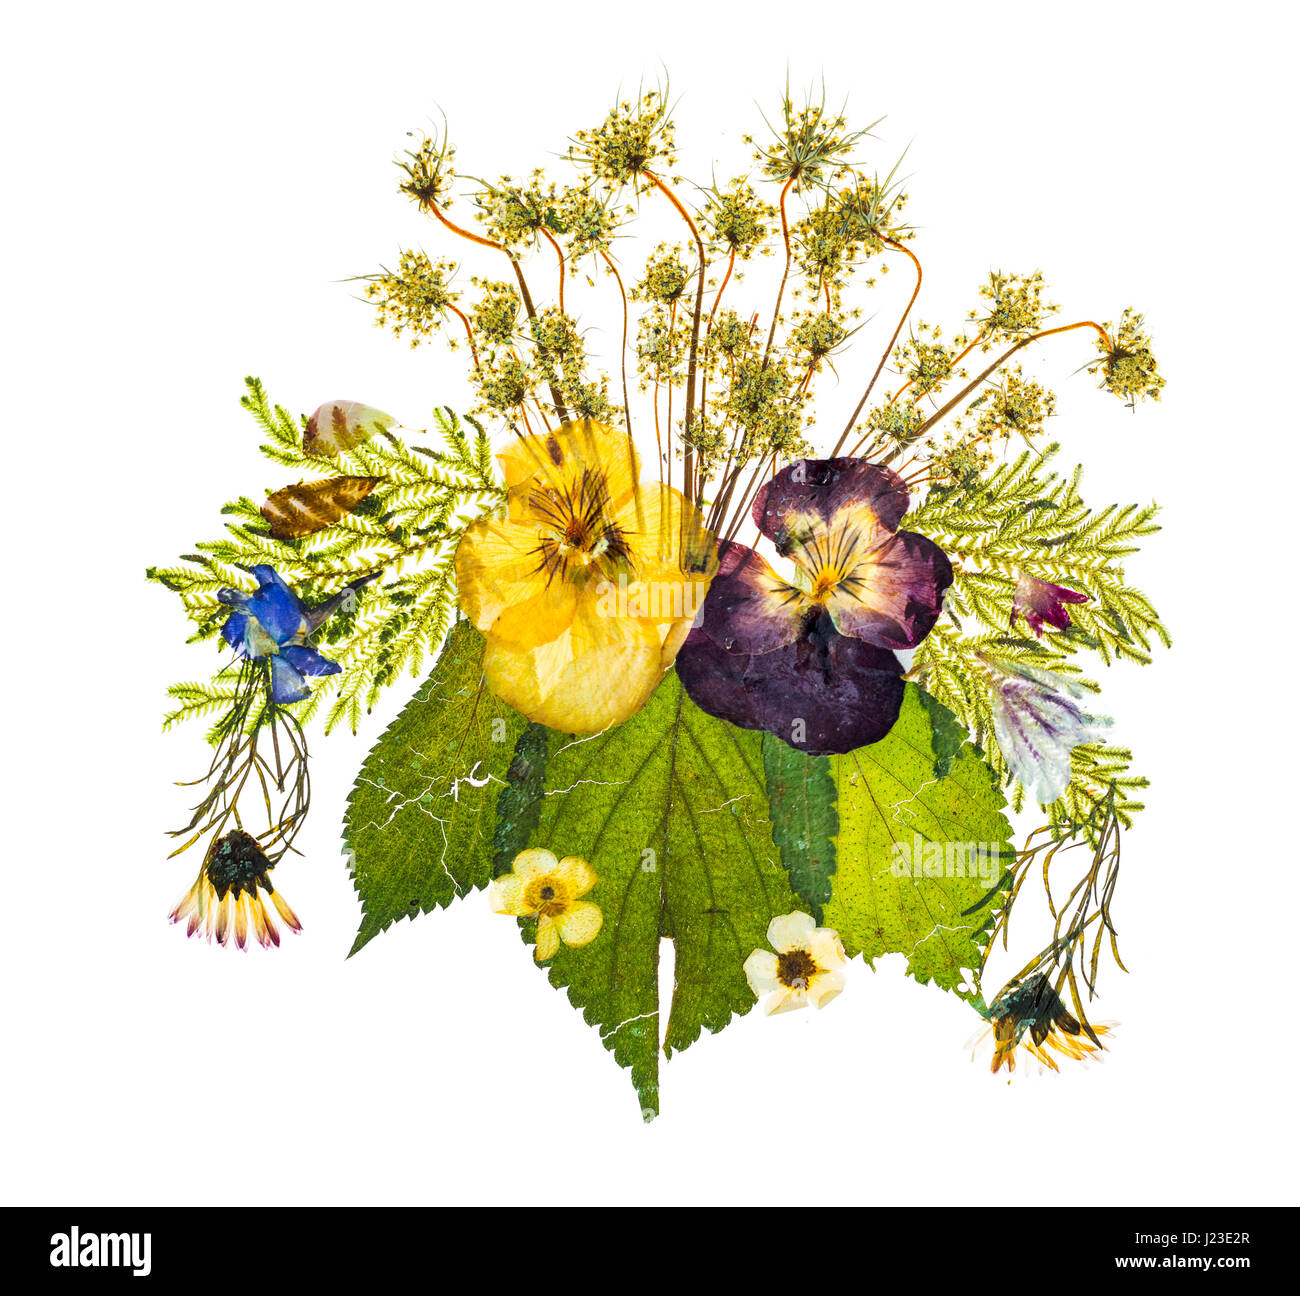 Beautiful pressed dried flowers arrangement on white background - Stock Image